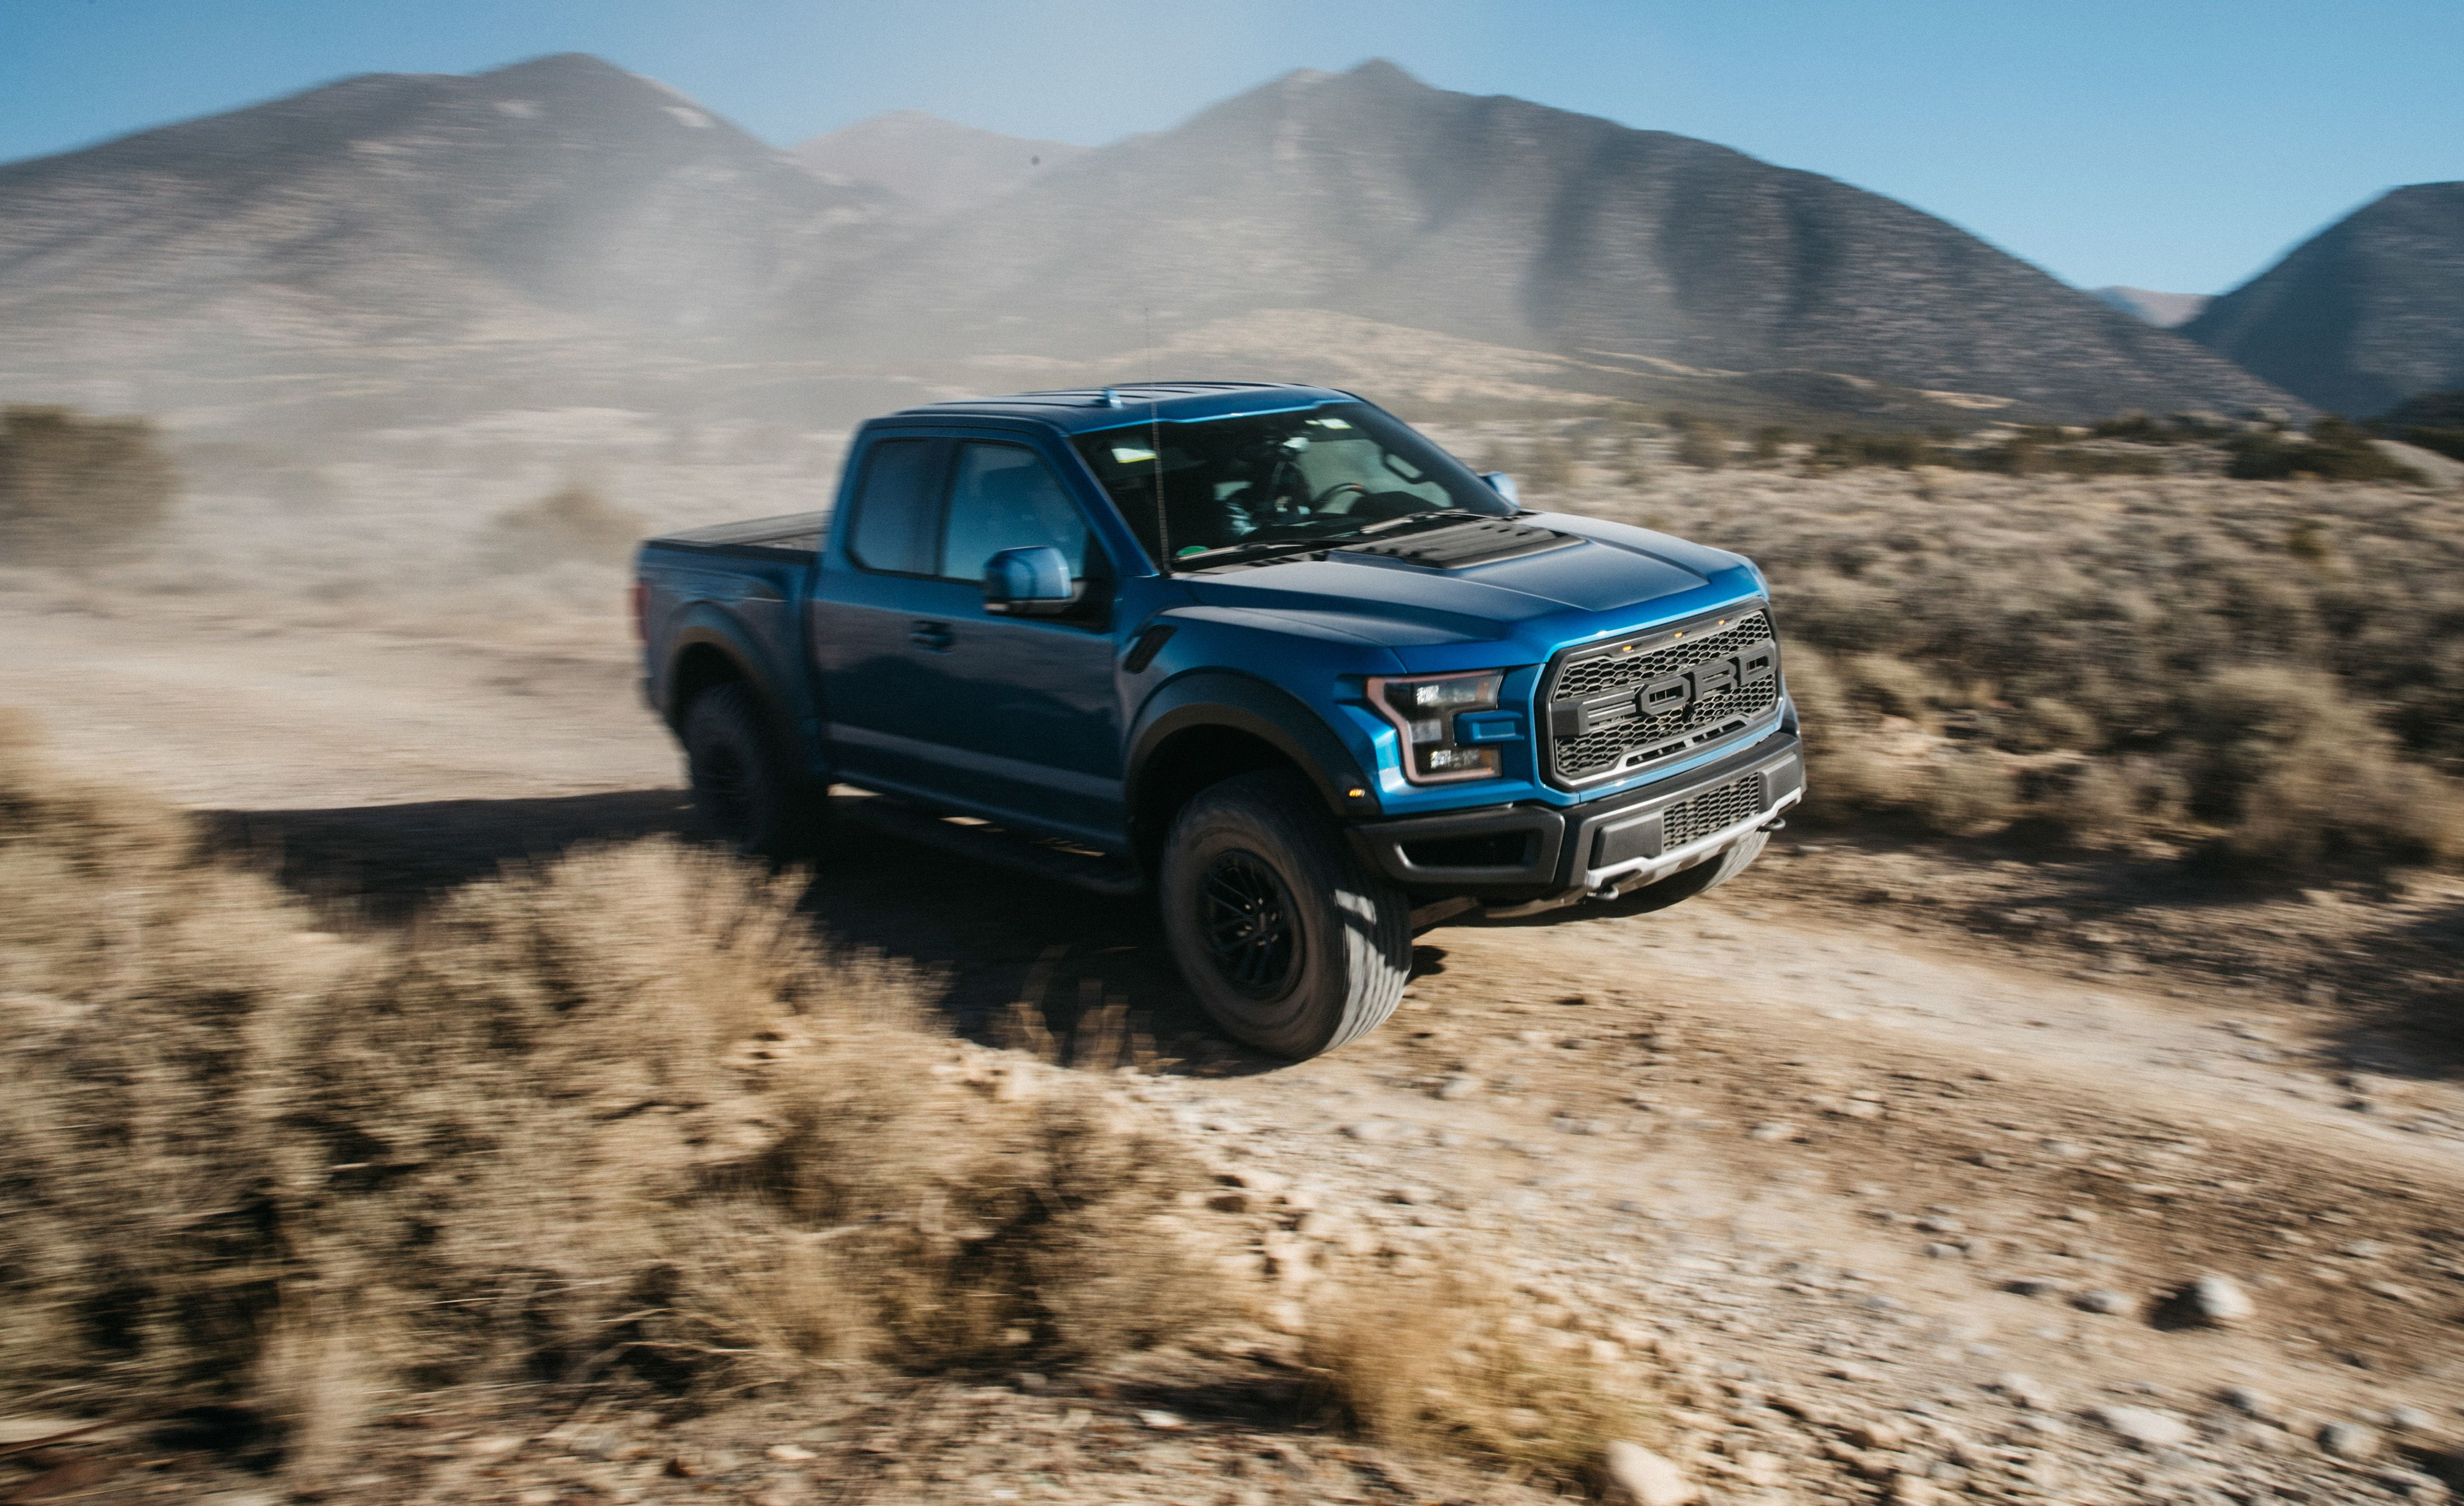 28 New 2020 Ford F150 Raptor Mpg Images